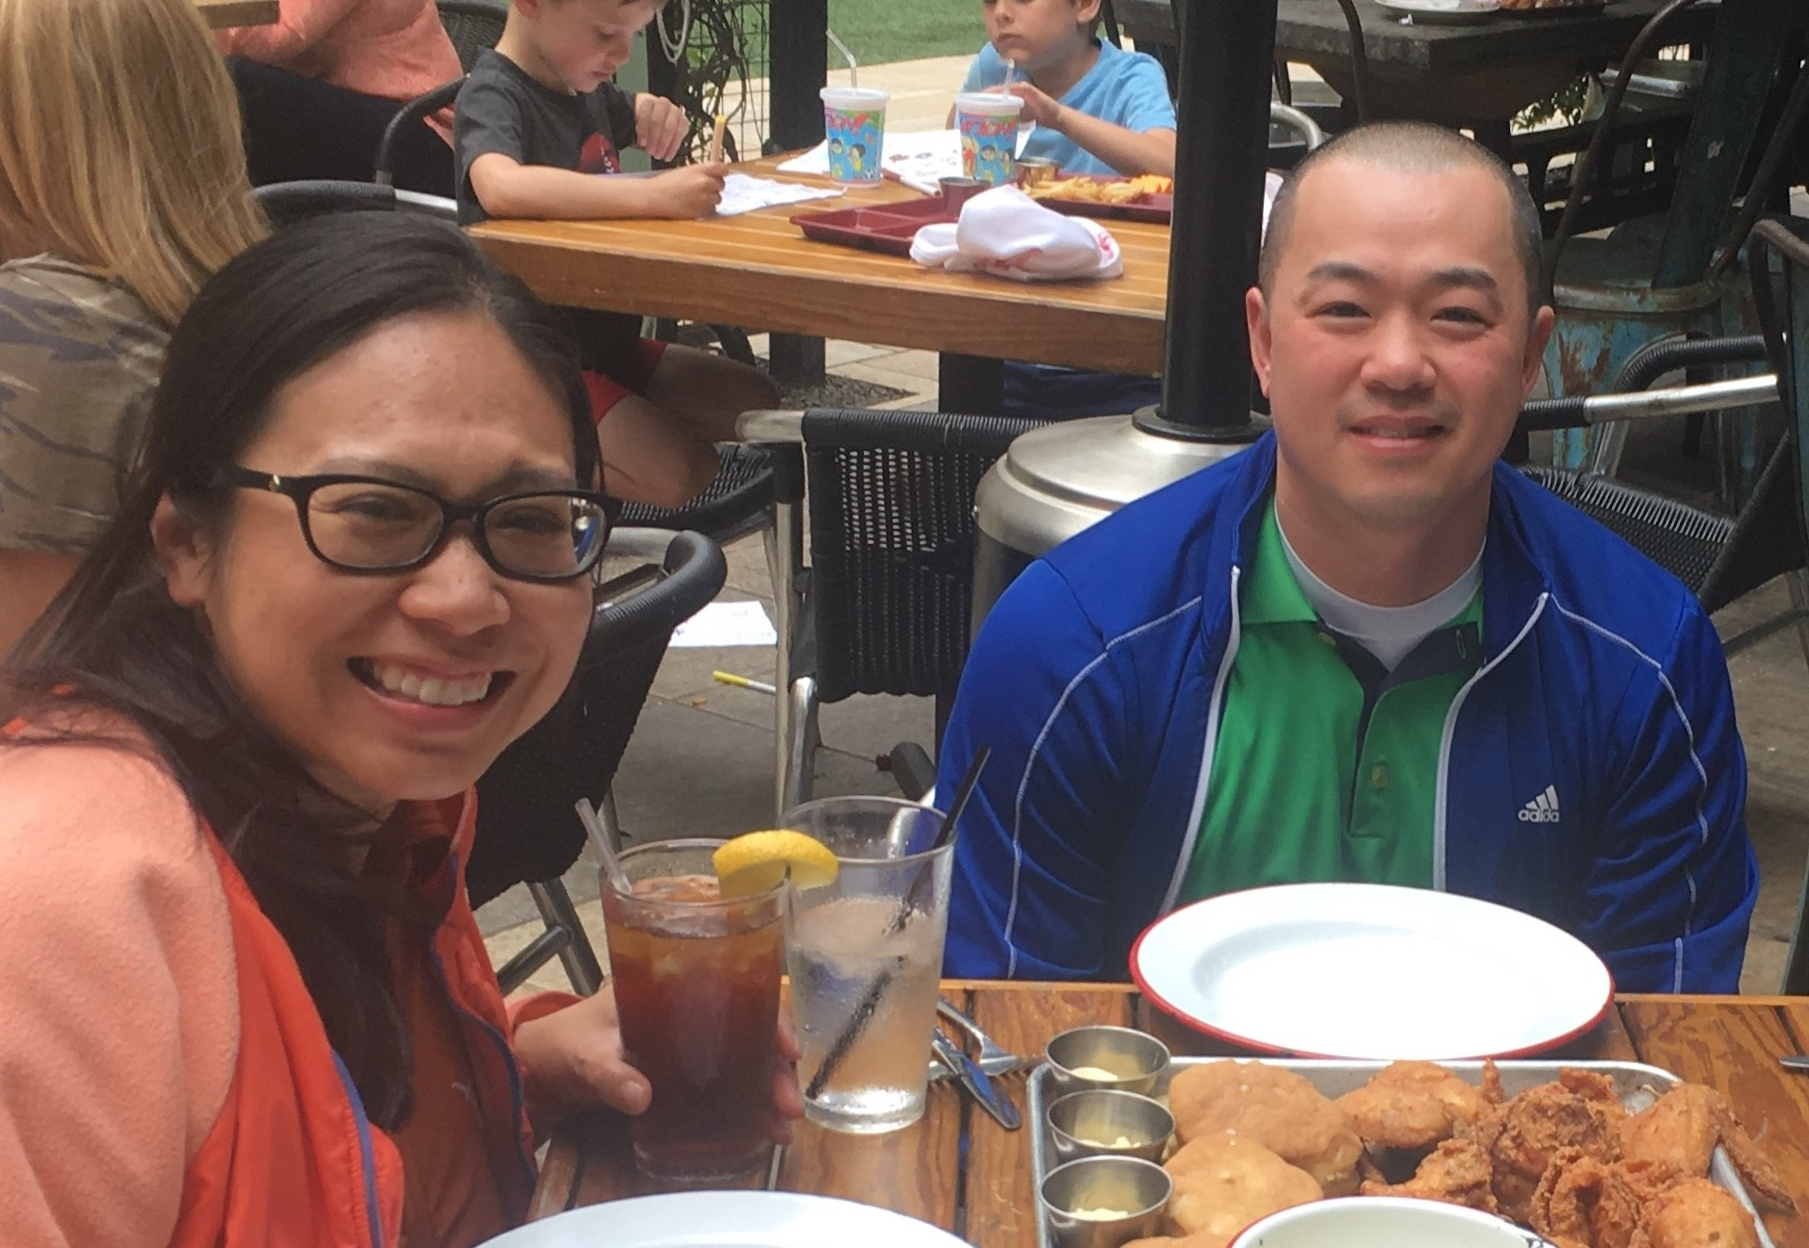 Introducing to Michigan Counselor and friend, Jeff Lip, to Southern Fried Chicken in Houston, Texas (March 2018).